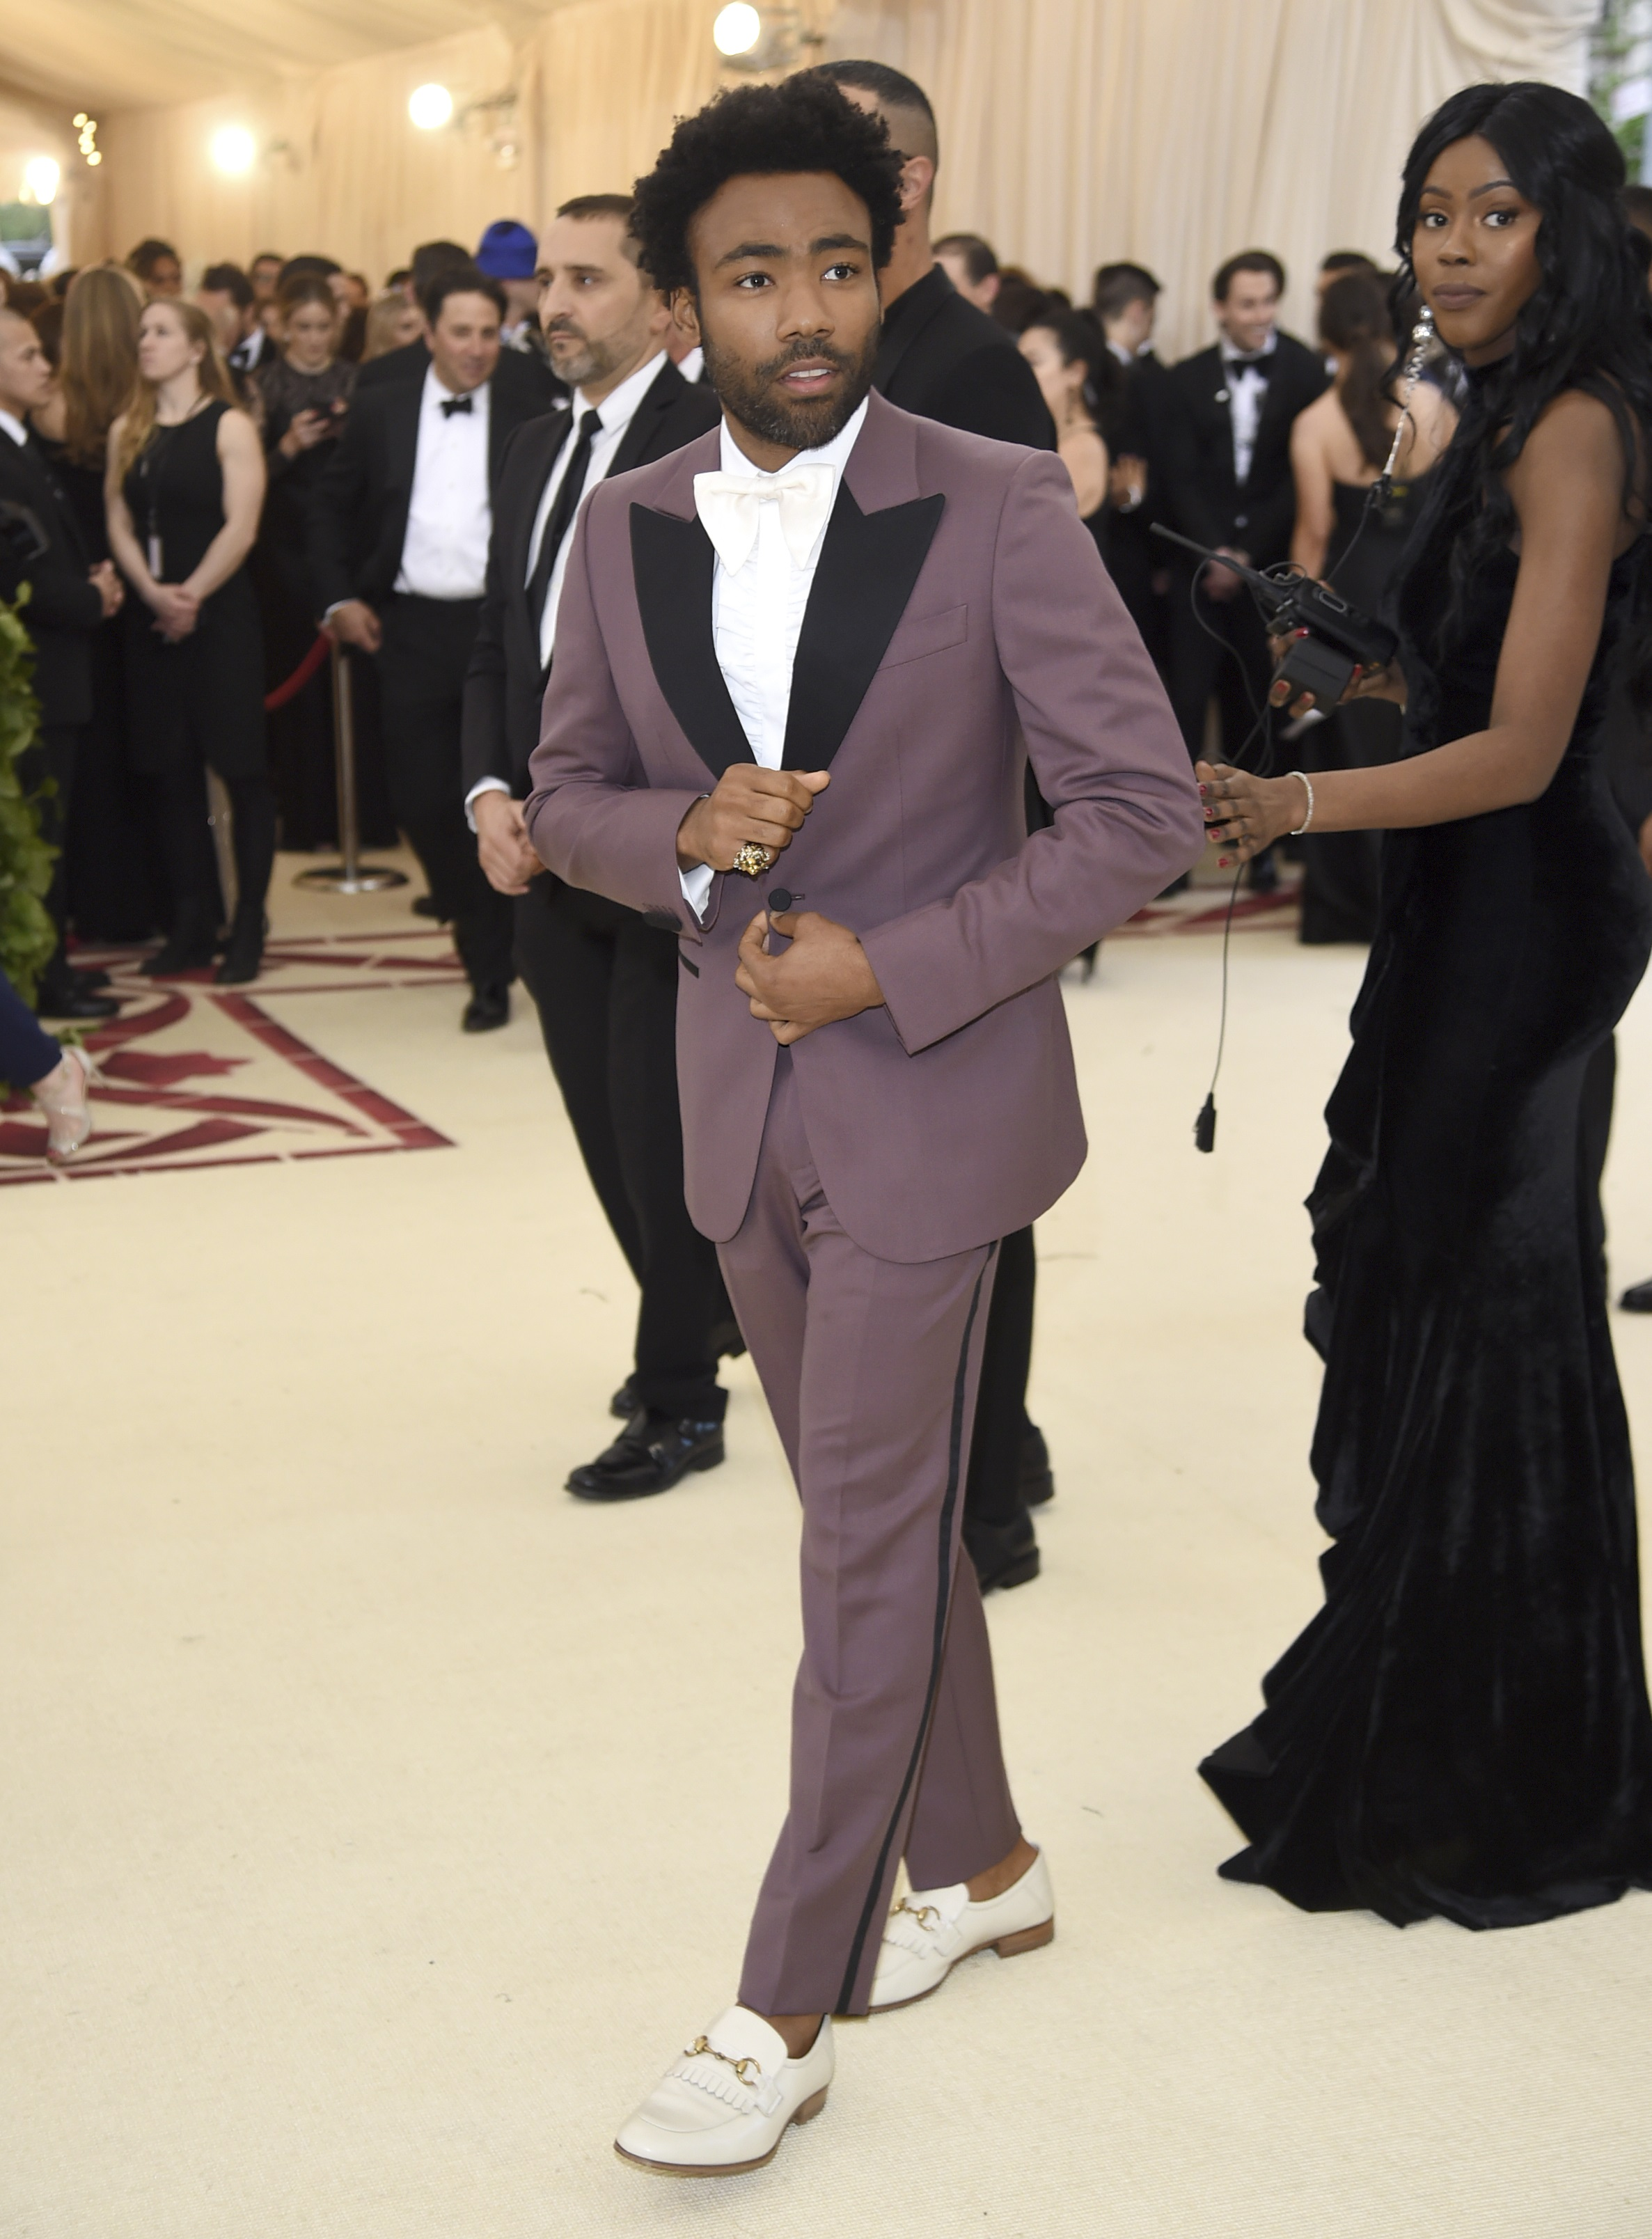 "<div class=""meta image-caption""><div class=""origin-logo origin-image none""><span>none</span></div><span class=""caption-text"">Childish Gambino (Photo by Evan Agostini/Invision/AP) (Evan Agostini/Invision/AP)</span></div>"